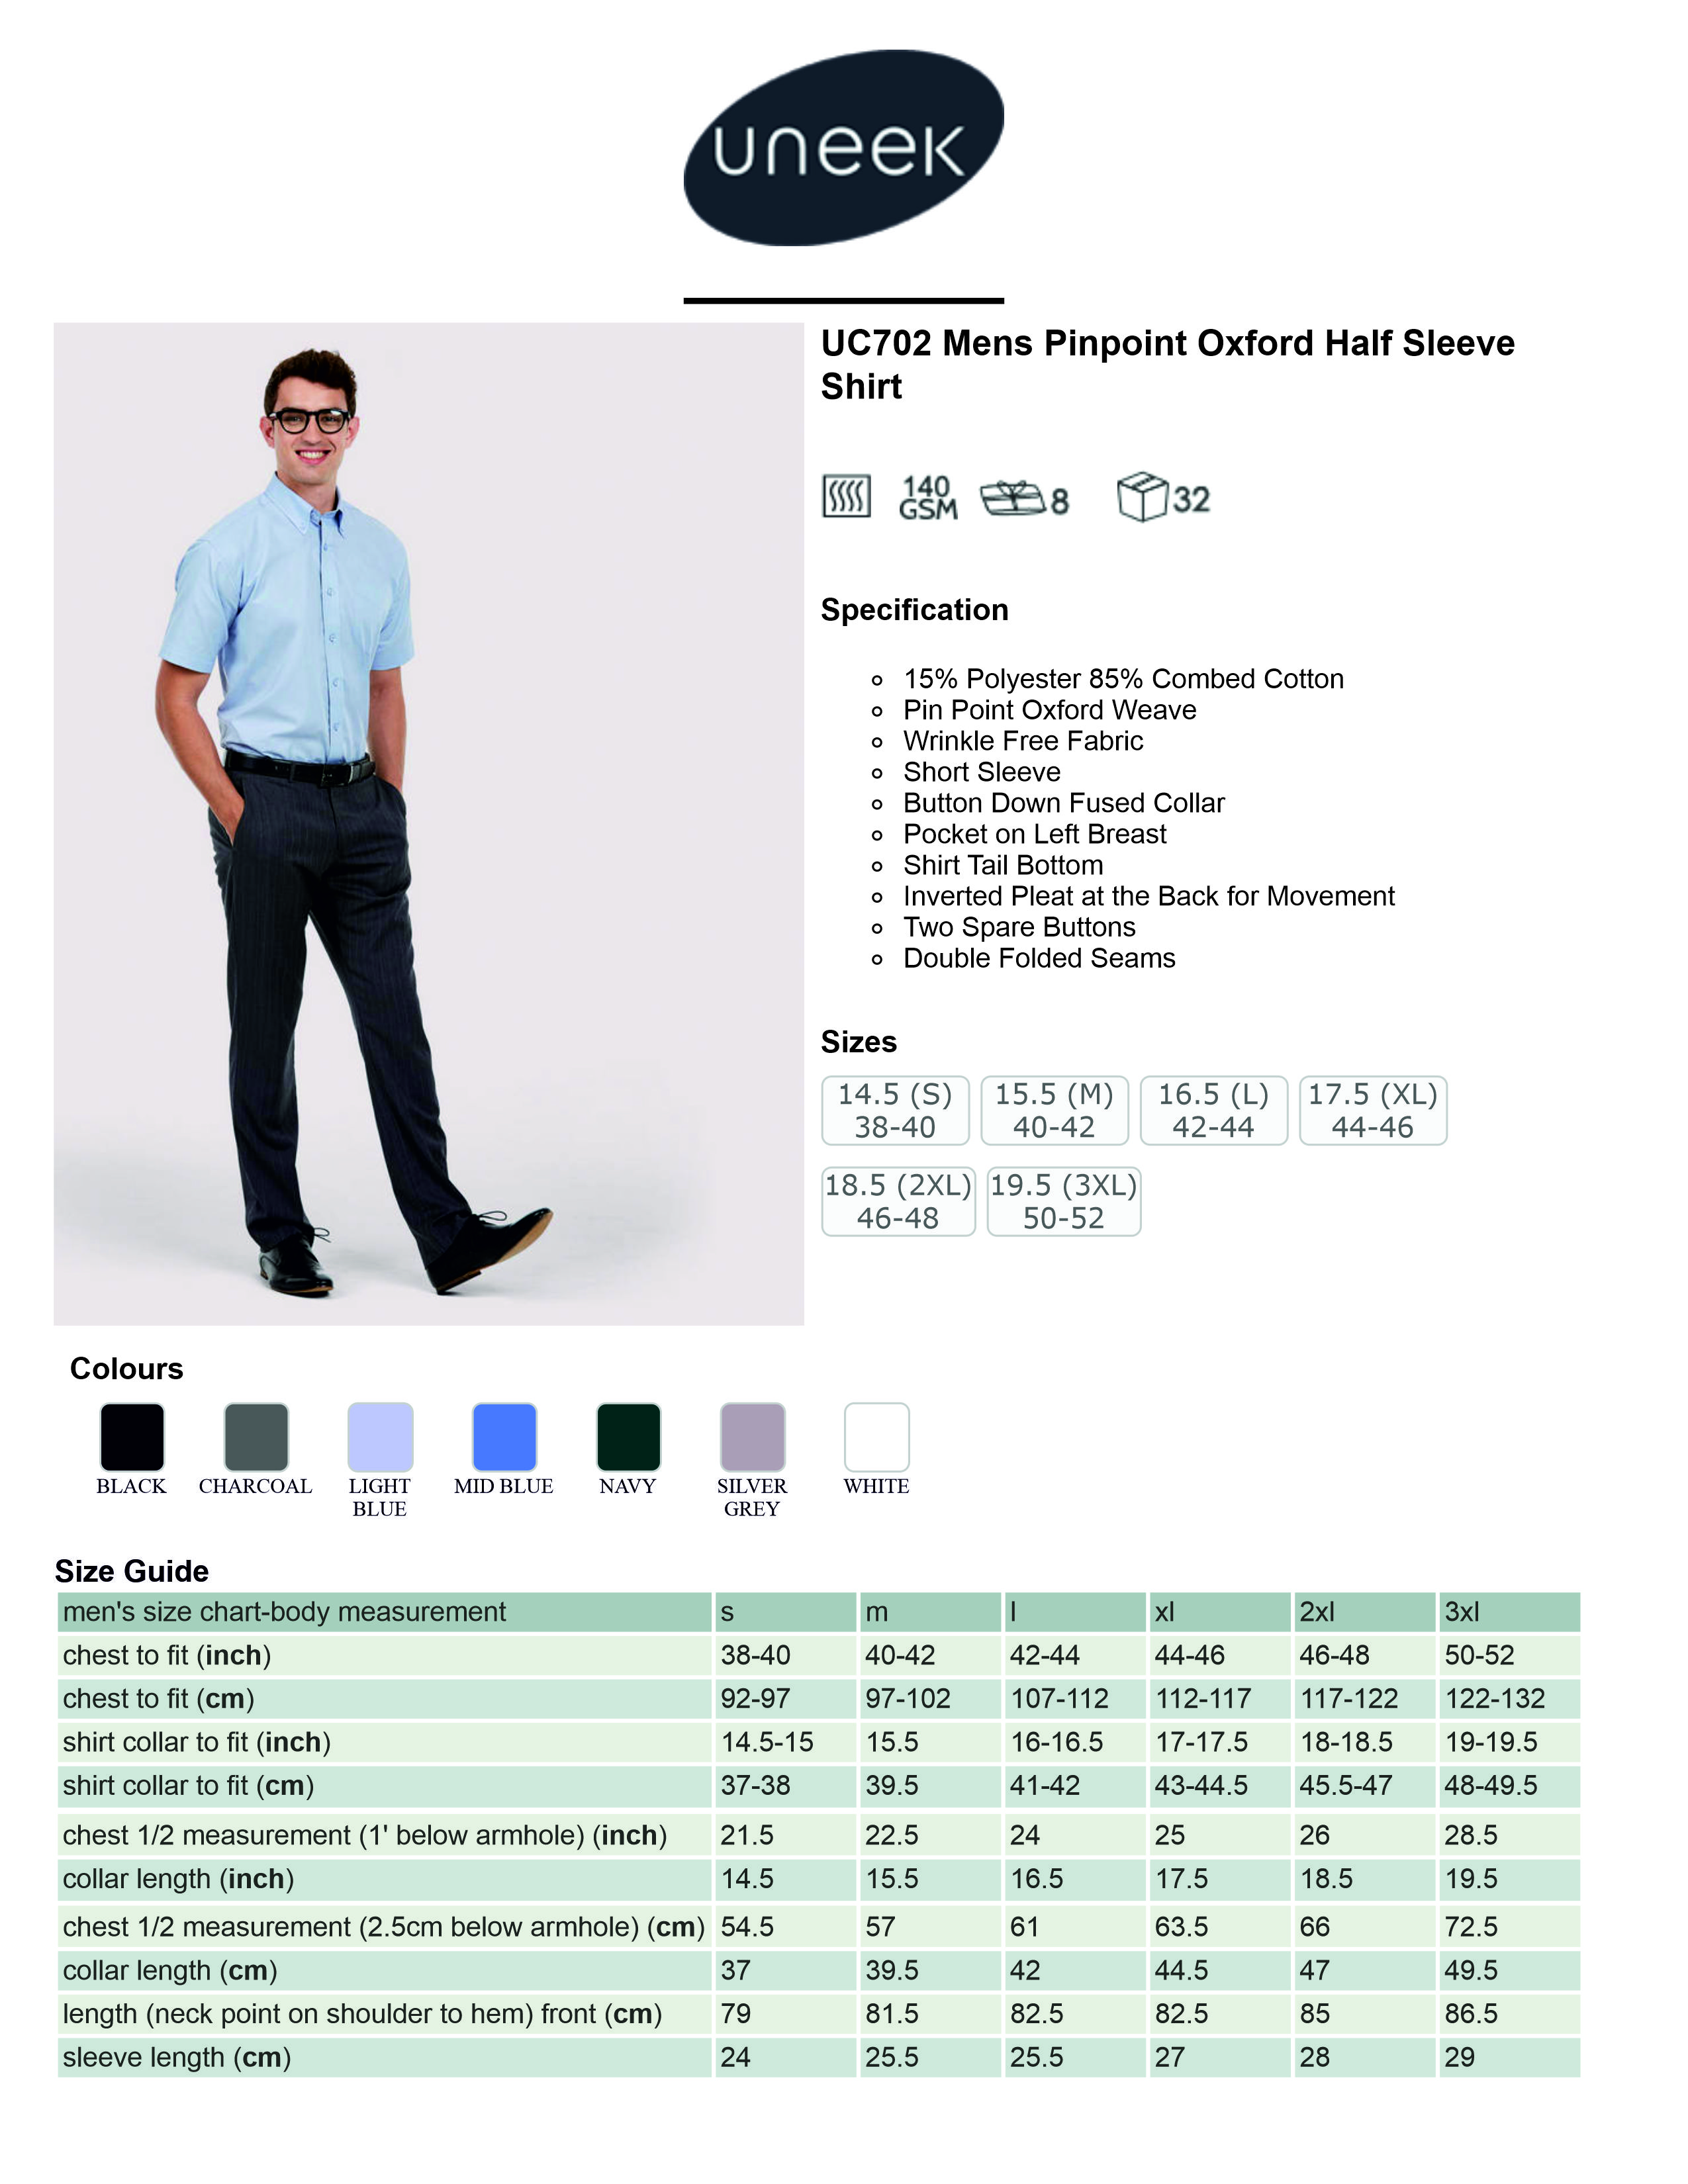 UC702 Mens Pin Point Oxford Half Sleeve Shirt Spec Sheet.jpg